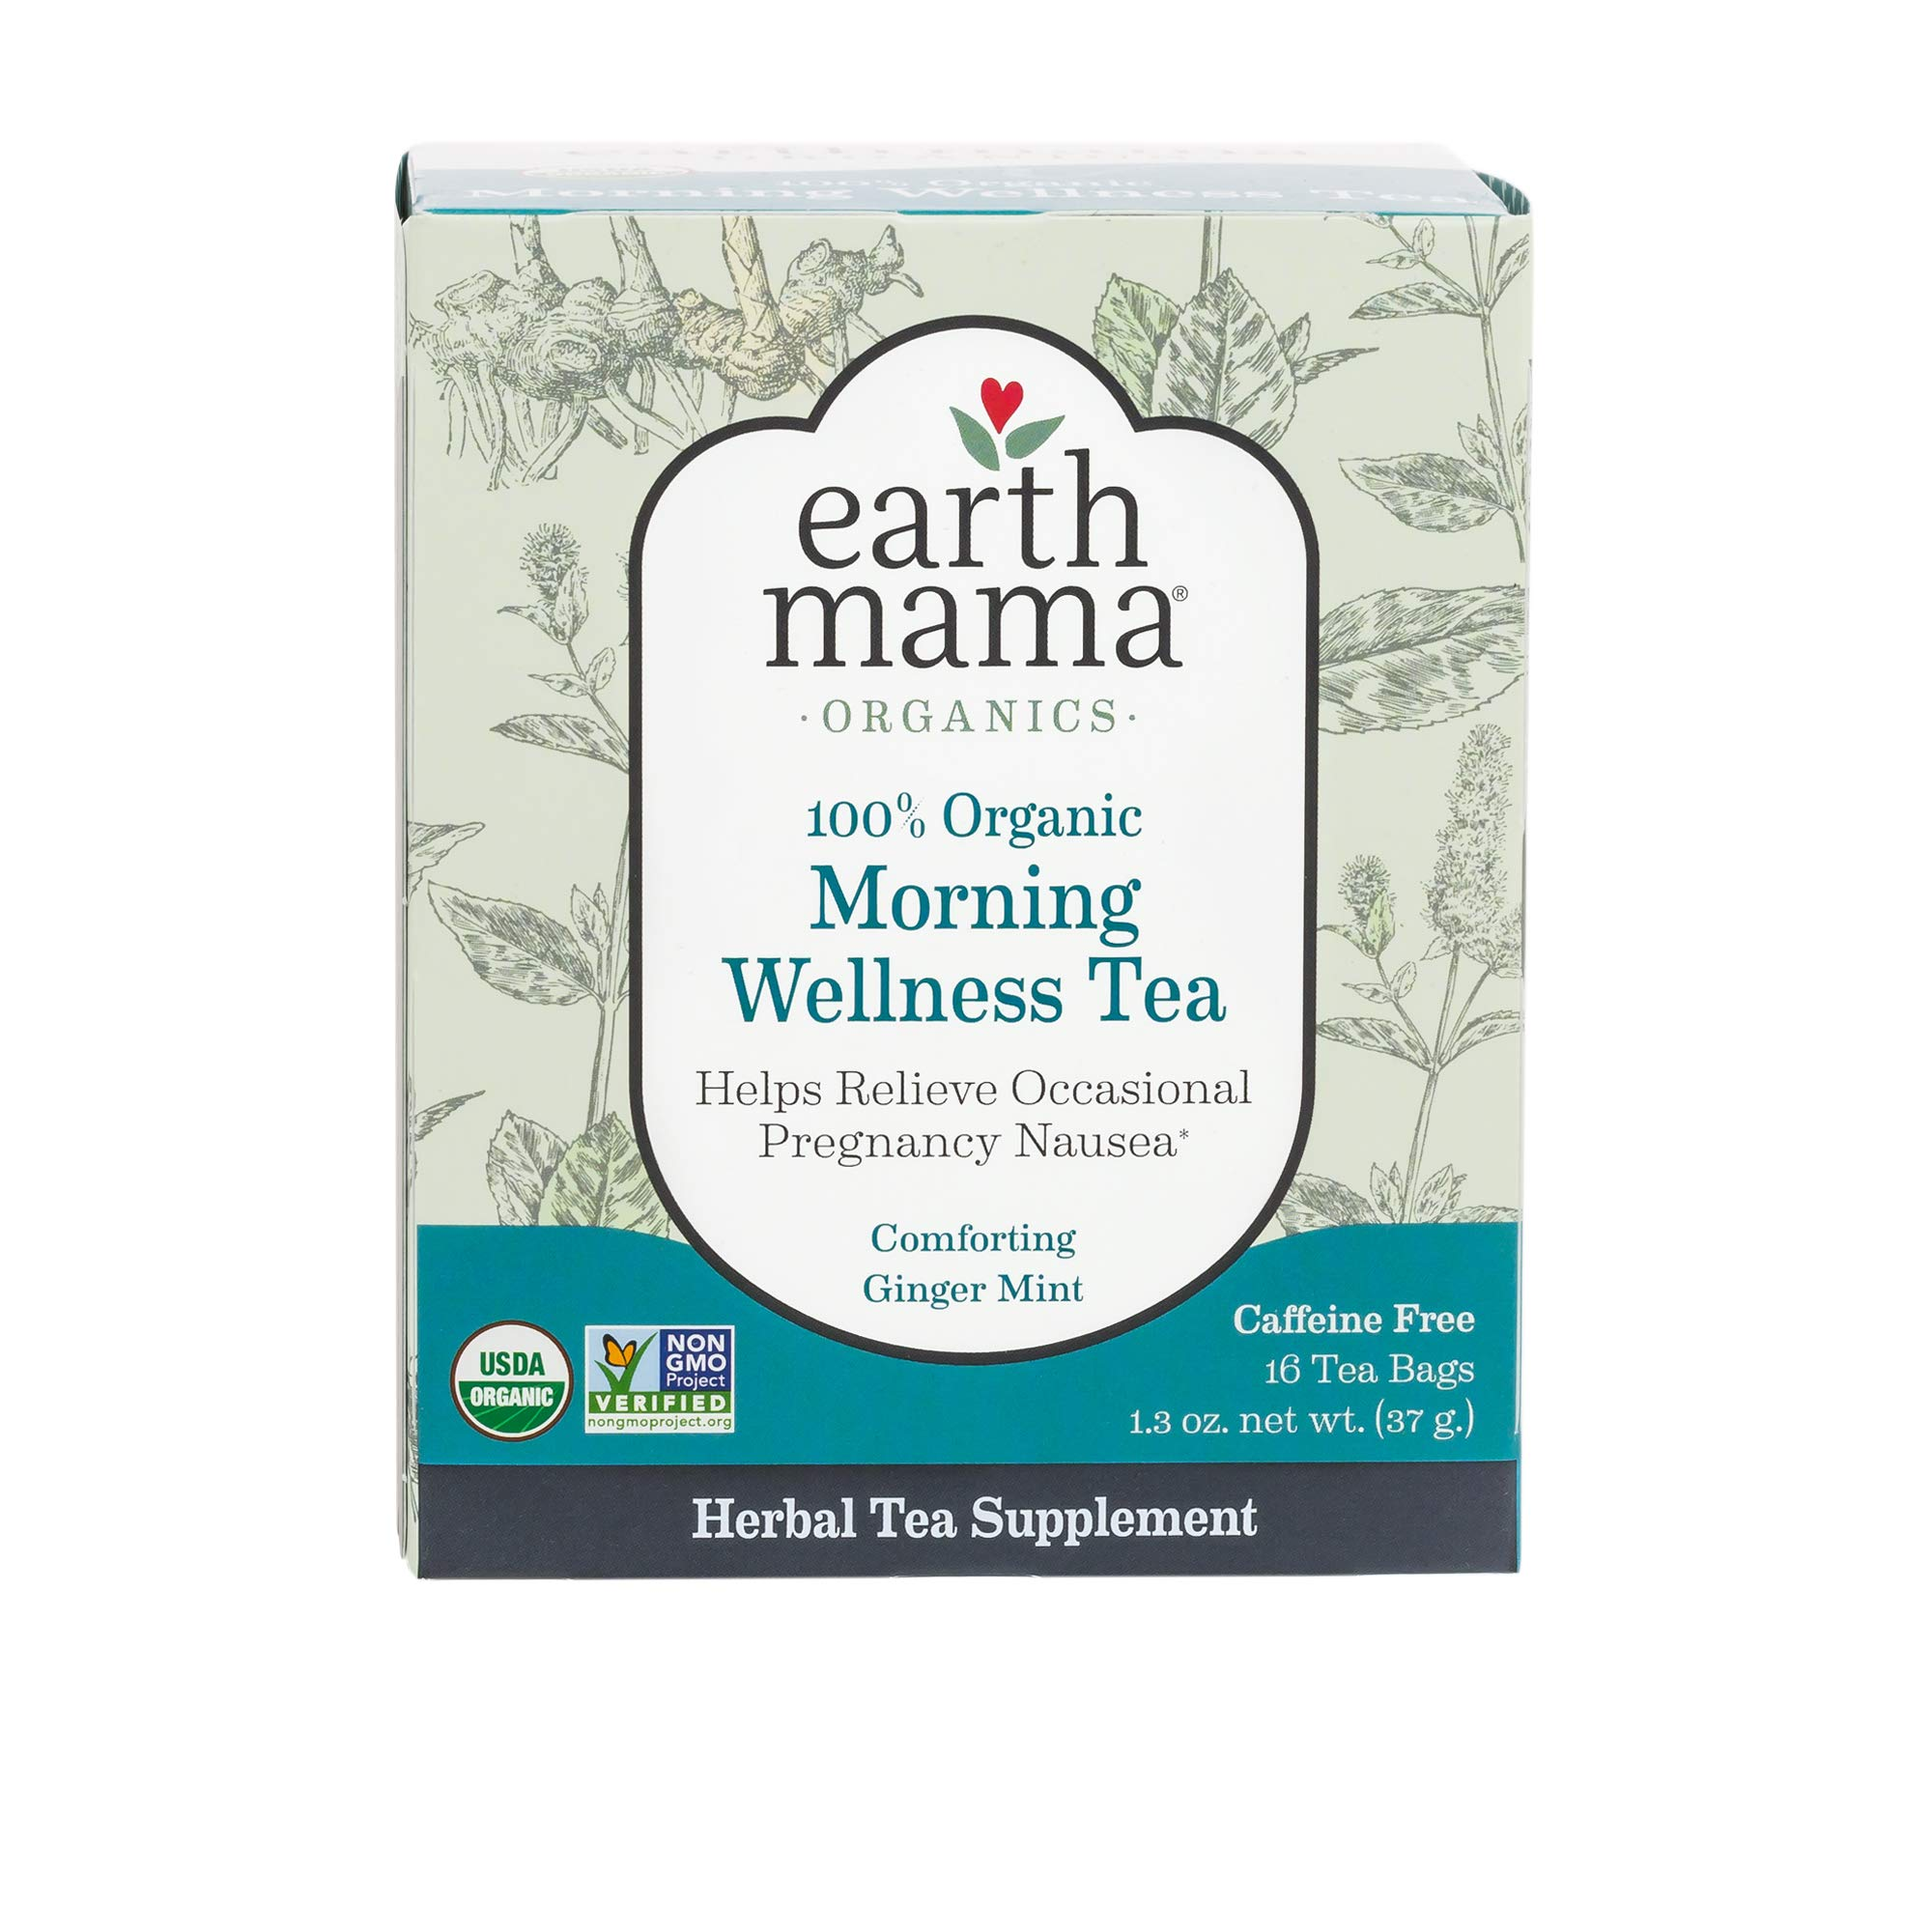 Organic Morning Wellness Tea for Occasional Morning Sickness, 16 Teabags/Box